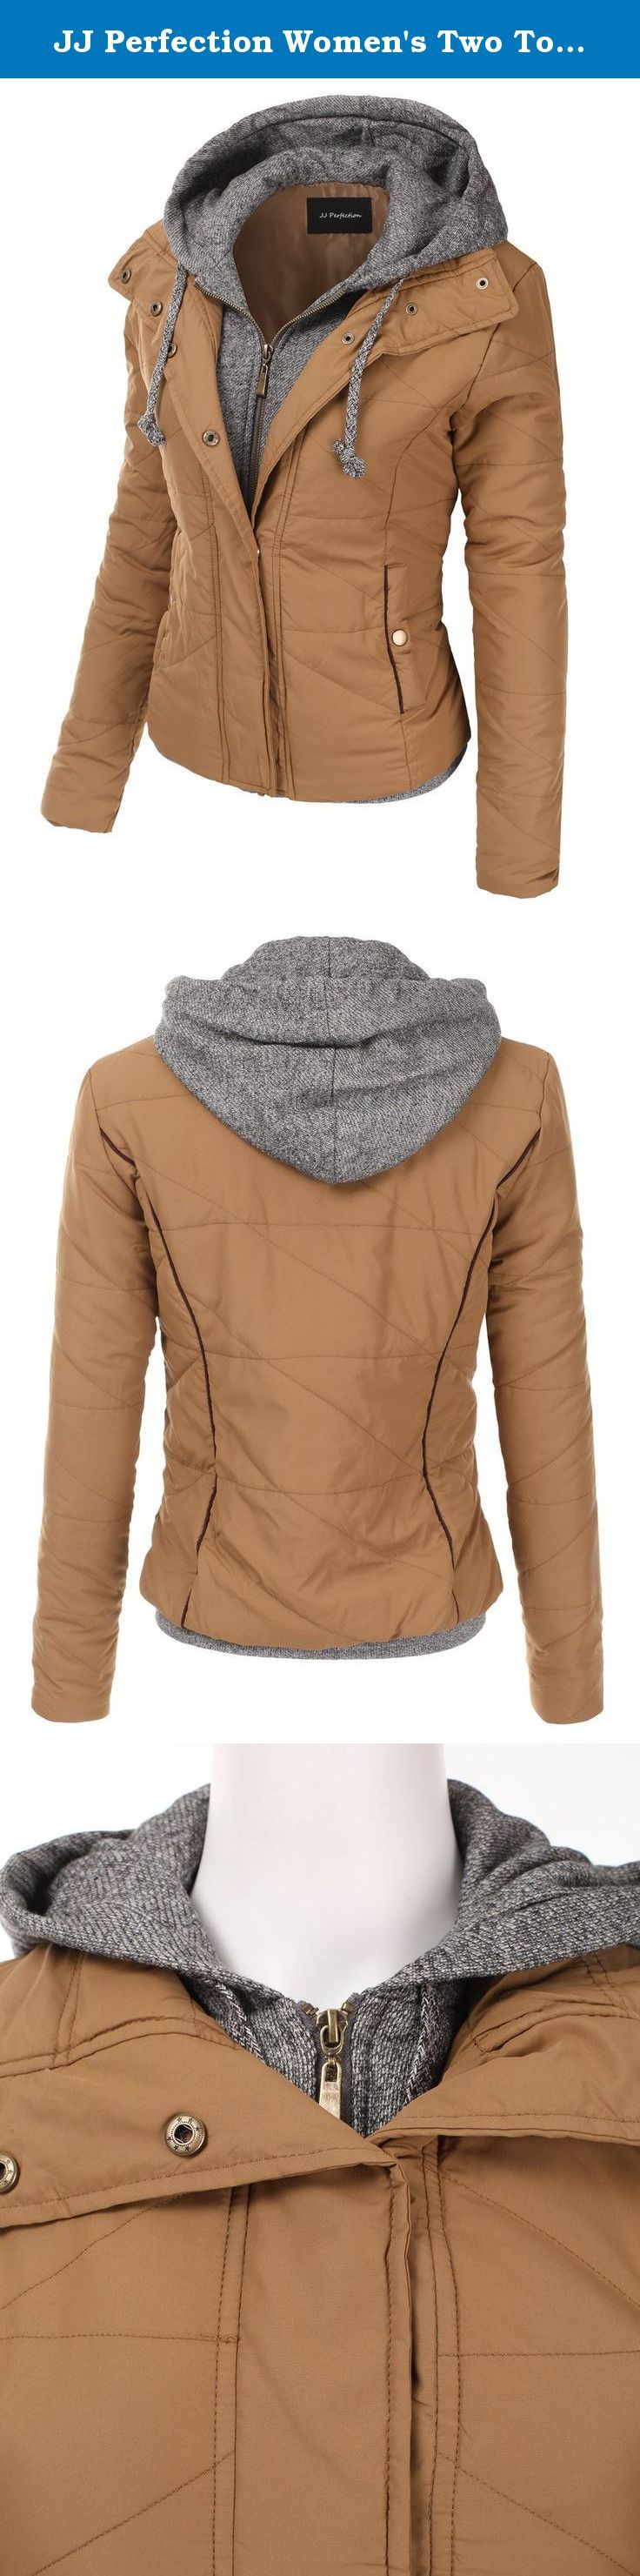 JJ Perfection Women's Two Tone Drawstring Hooded Mix Quilted Padded Jacket CAMEL M. Crafted from soft, thick polyester, this women's two tone drawstring hooded mix quilted padded jacket is extremely comfortable and warm perfect for the upcoming cold season!.